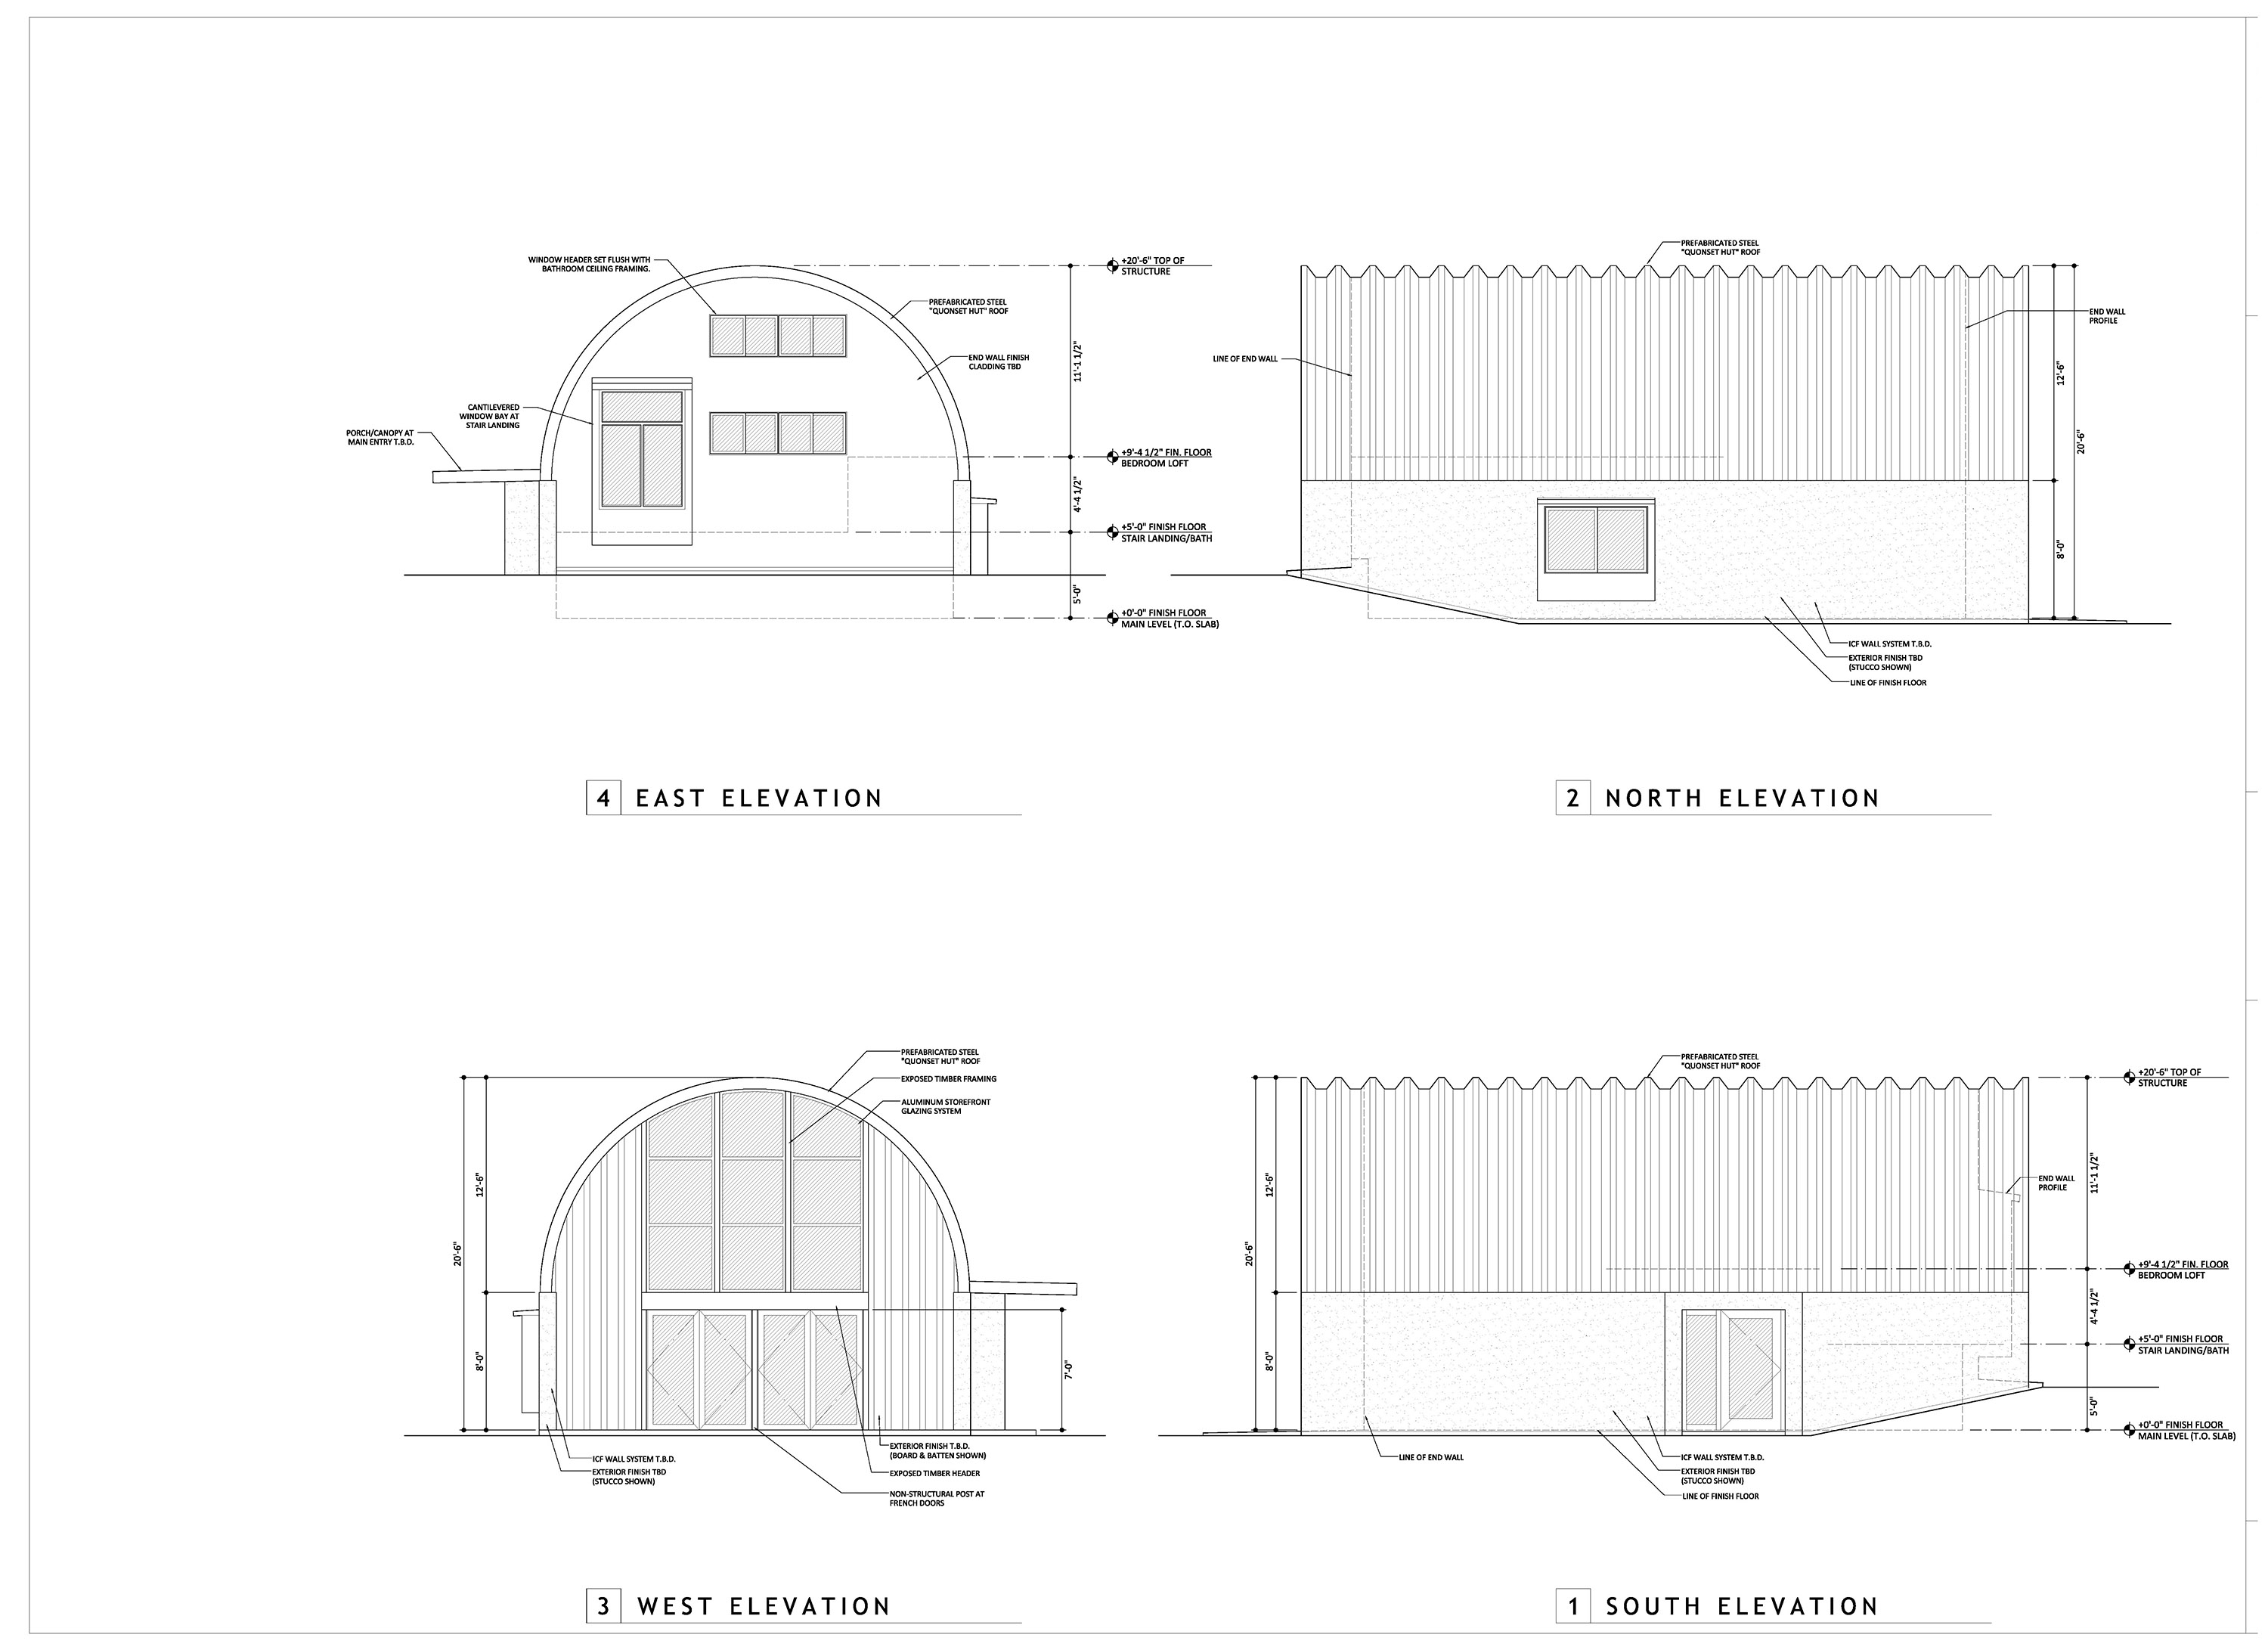 quonset house design loft guest house clever moderns here are the plans as we ve developed them thus far i will soon be releasing them as a downloadable pdf for free if you want to be notified when they drop